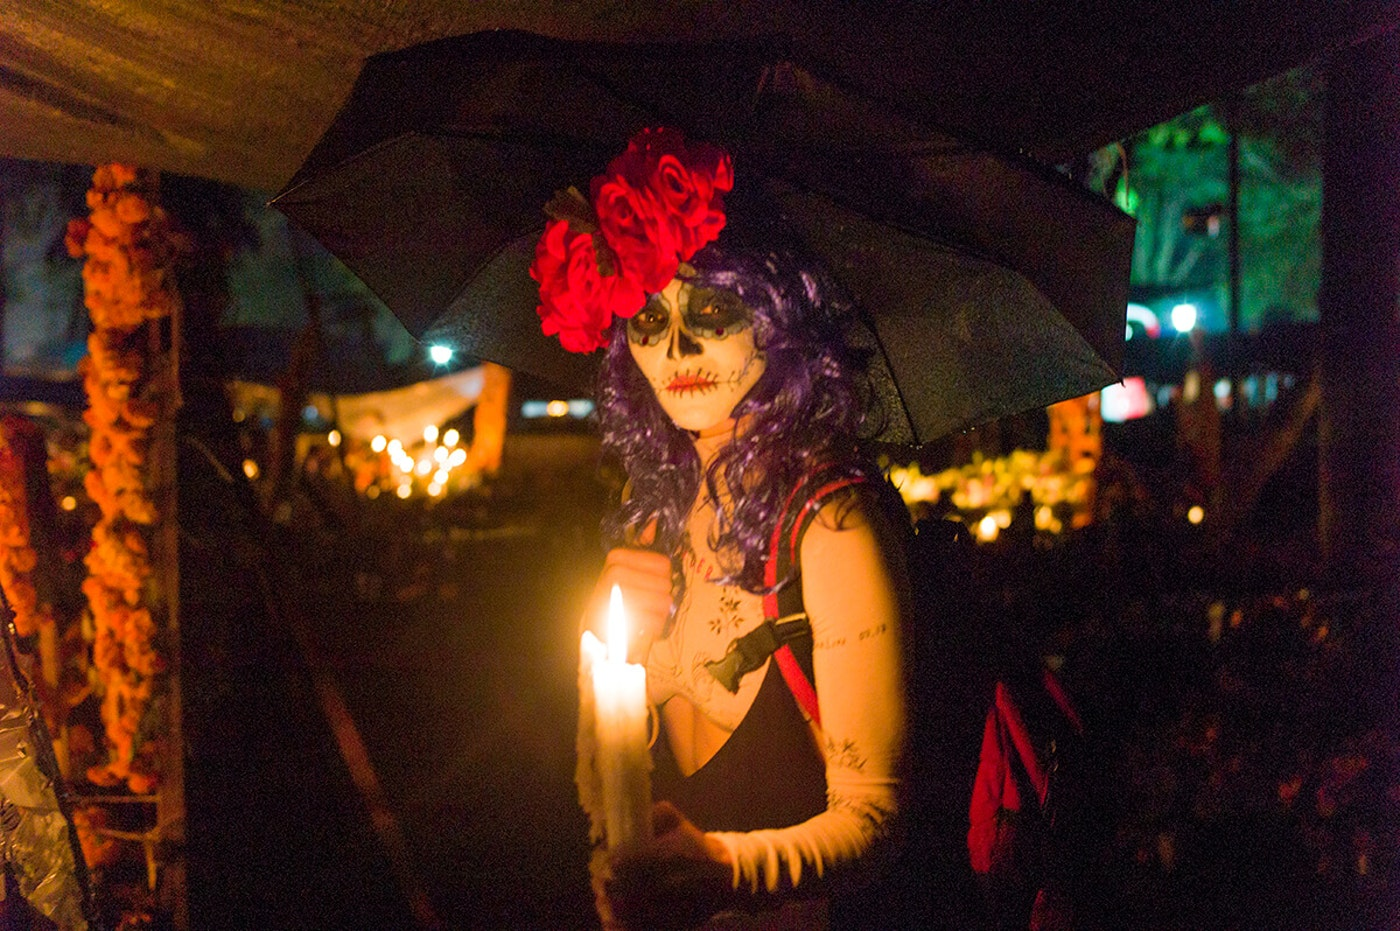 a woman in Day of the Dead makeup holds a candle while posing in the dark